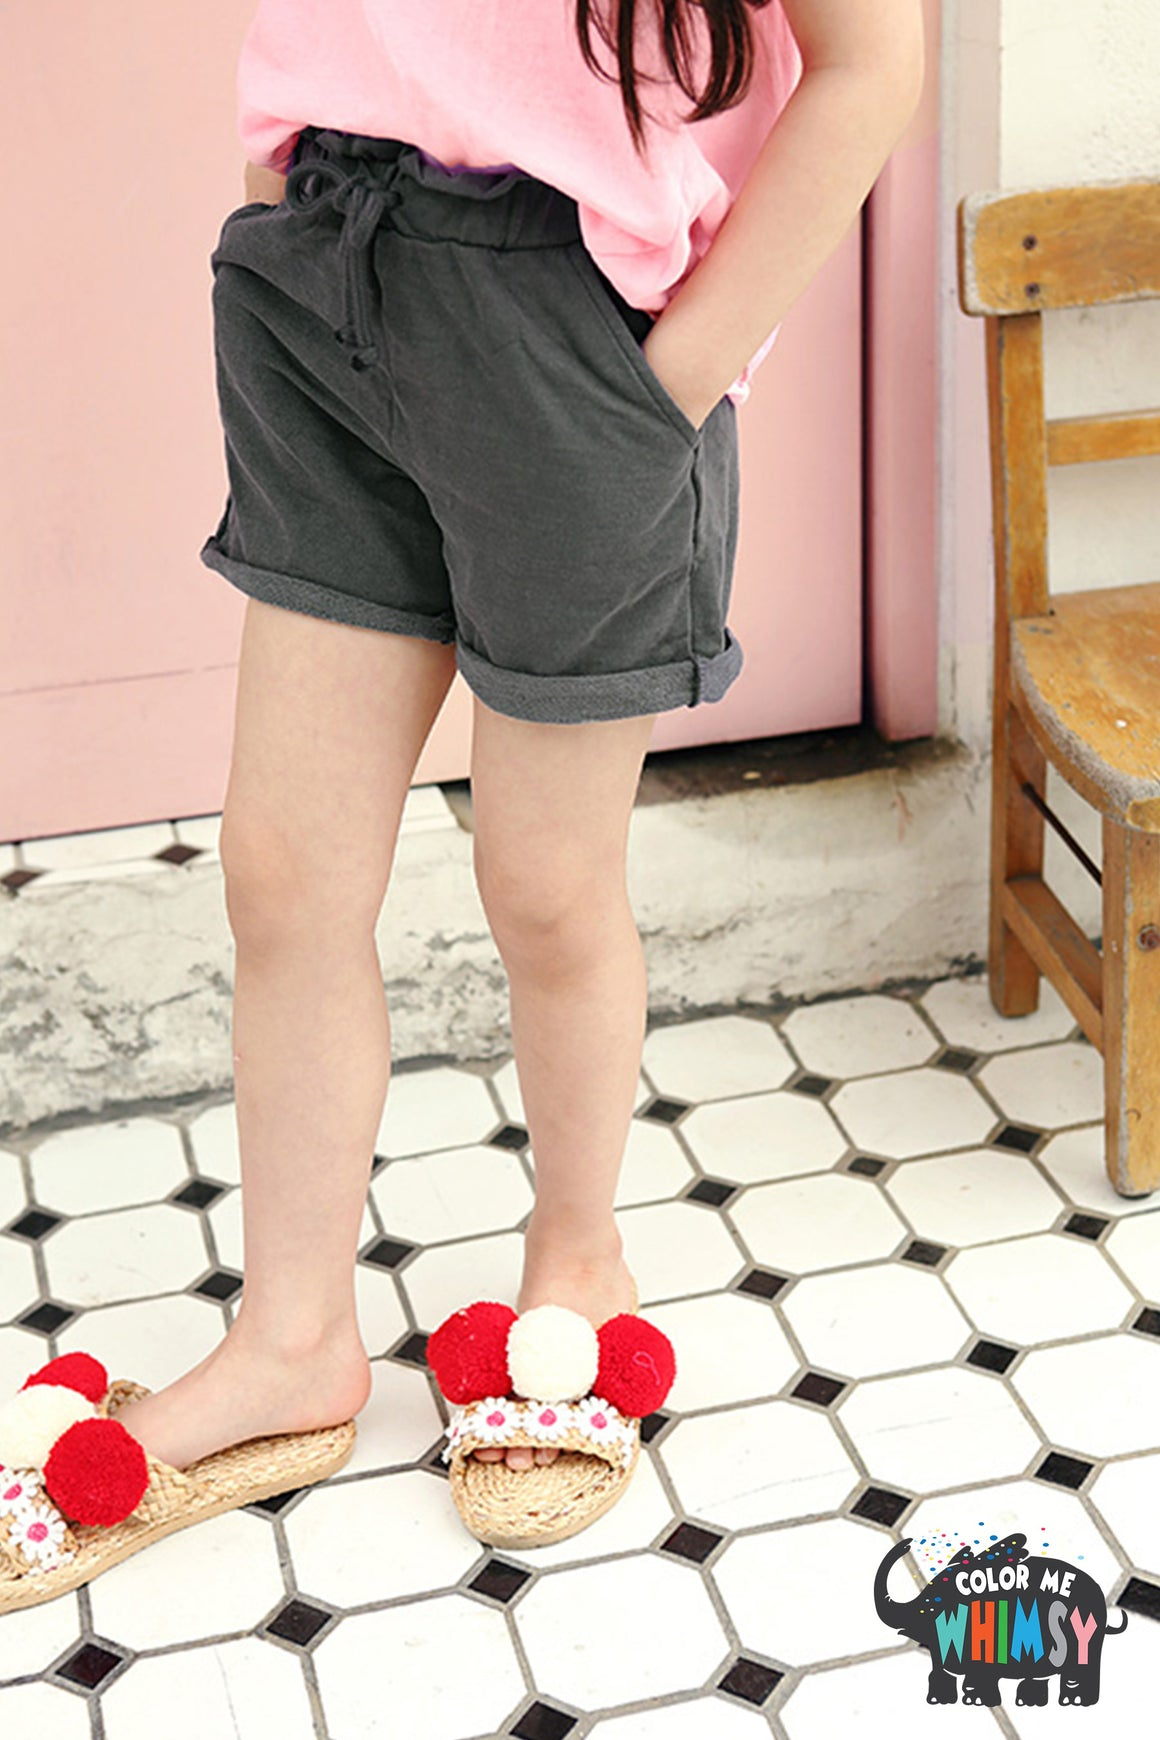 Peach and Cream Easy Shorts at Color Me WHIMSY Hip Kid's Fashion Ethically Made in South Korea